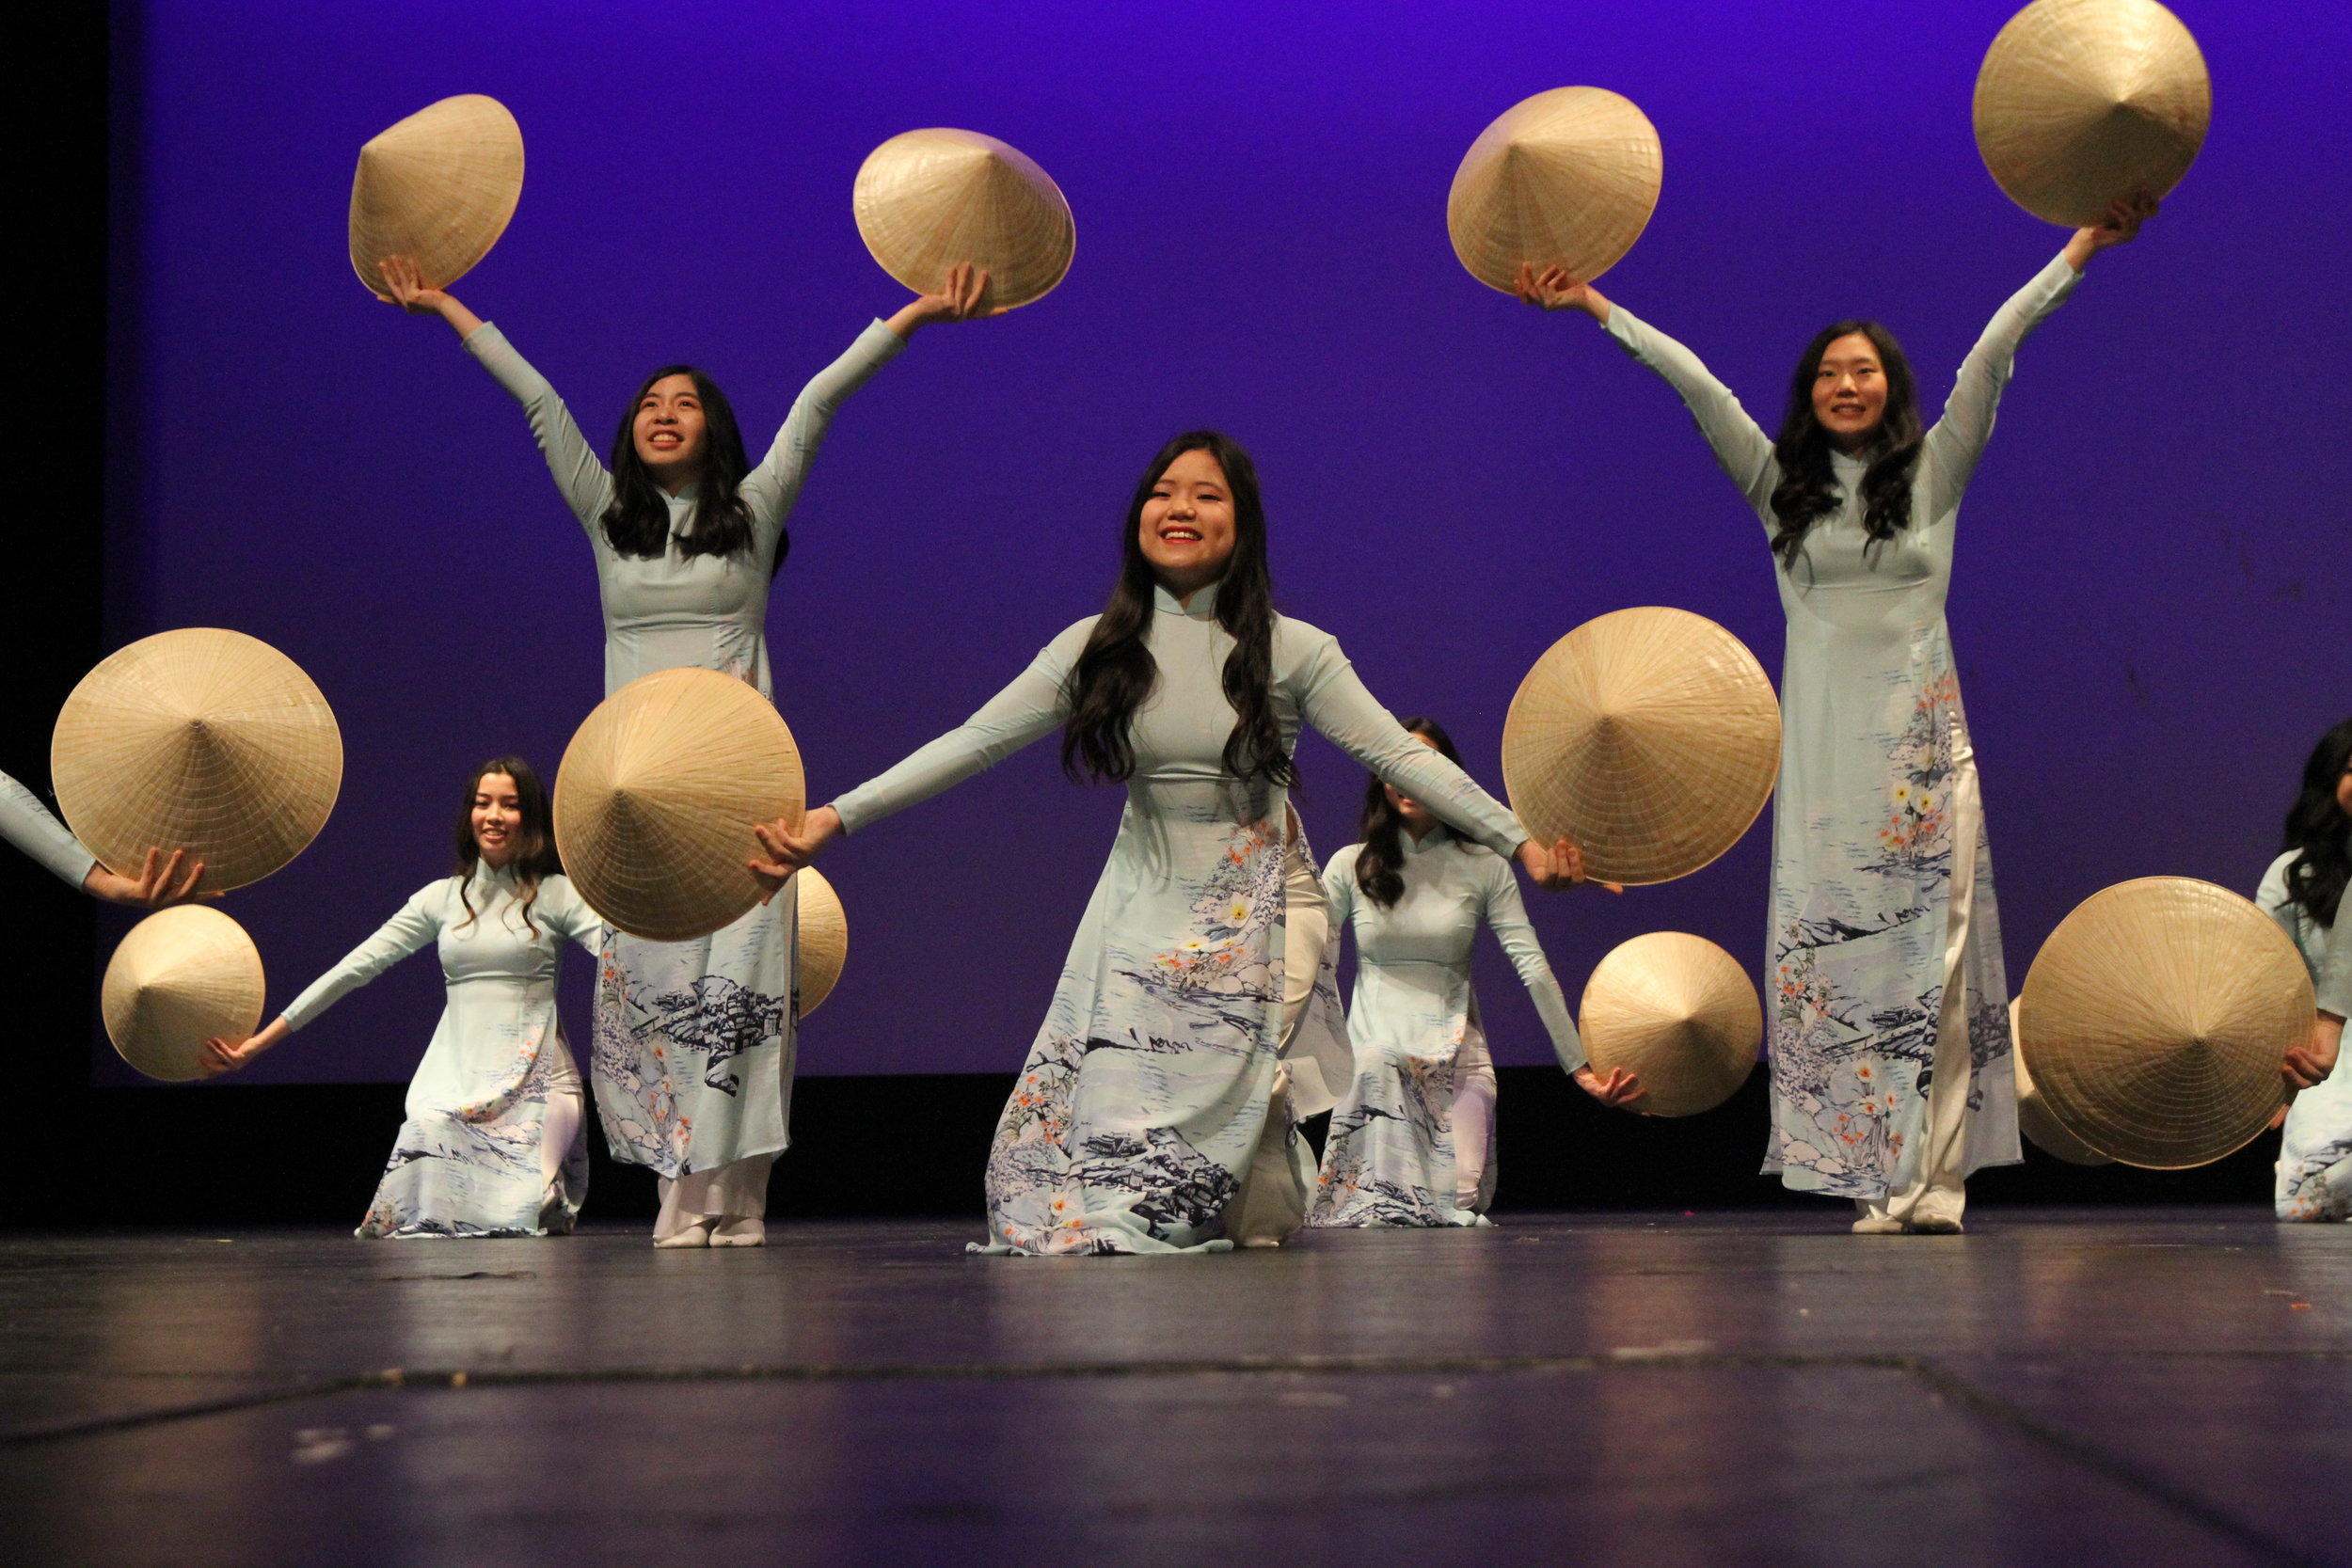 Grace Nelson, Adv. 908, and the remaining dancers of Viet Mua, hold their traditional Vietnamese hats with honor